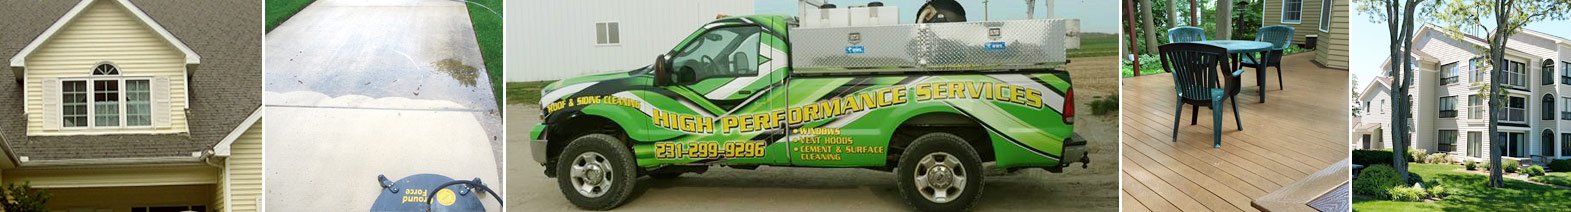 High Performance Services-Banner